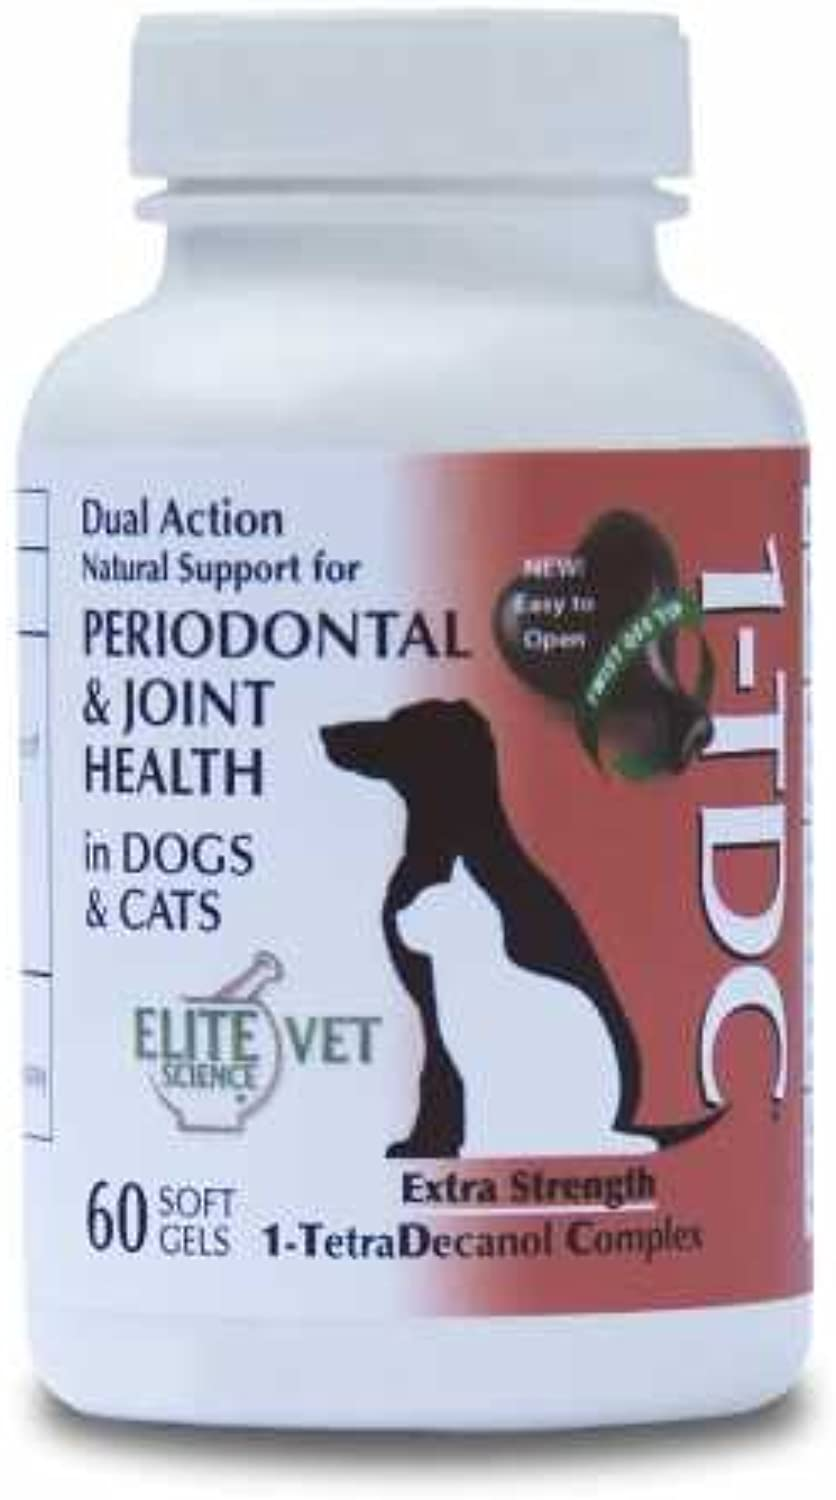 1TDC Dual Action Natural Support – 60 Twist Off Soft Gels   Delivers 4 Major Health Benefits for Dogs & Cats   Supports Oral Health, Hip & Joint Health, Muscle & Stamina Recovery, Skin & Coat Health